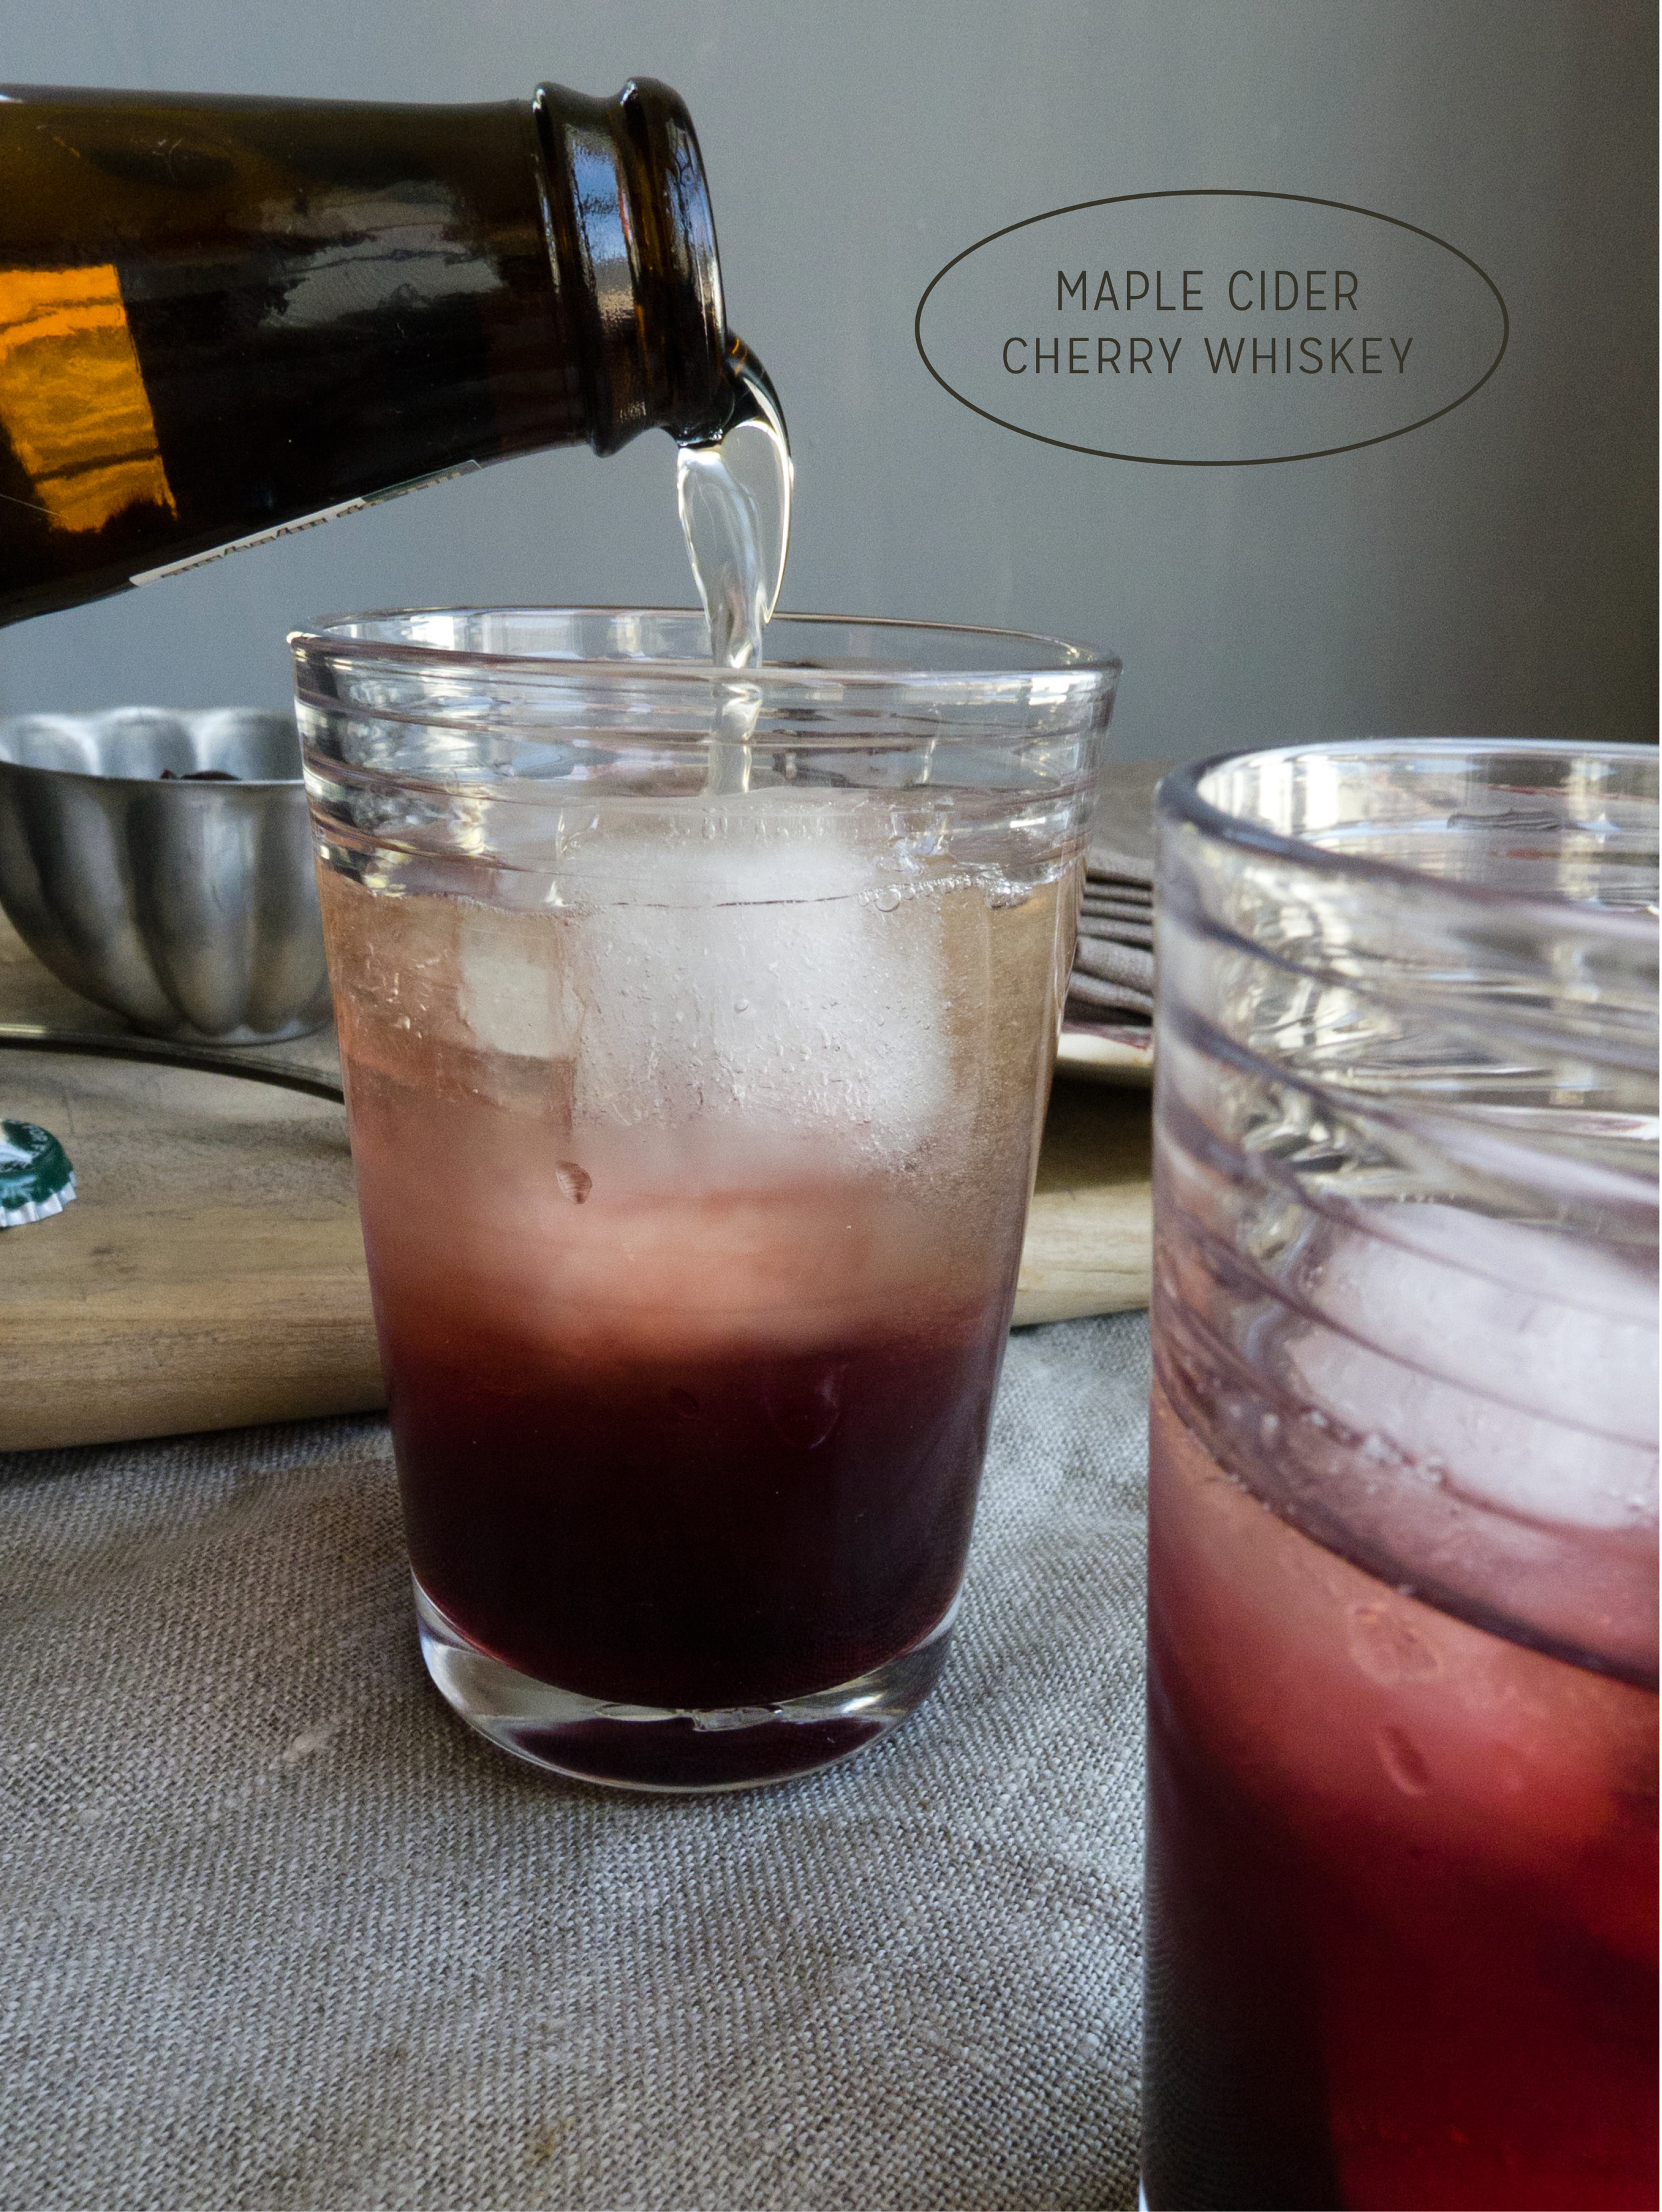 Healthier Weddings: Spring Cherry Cider Cocktail